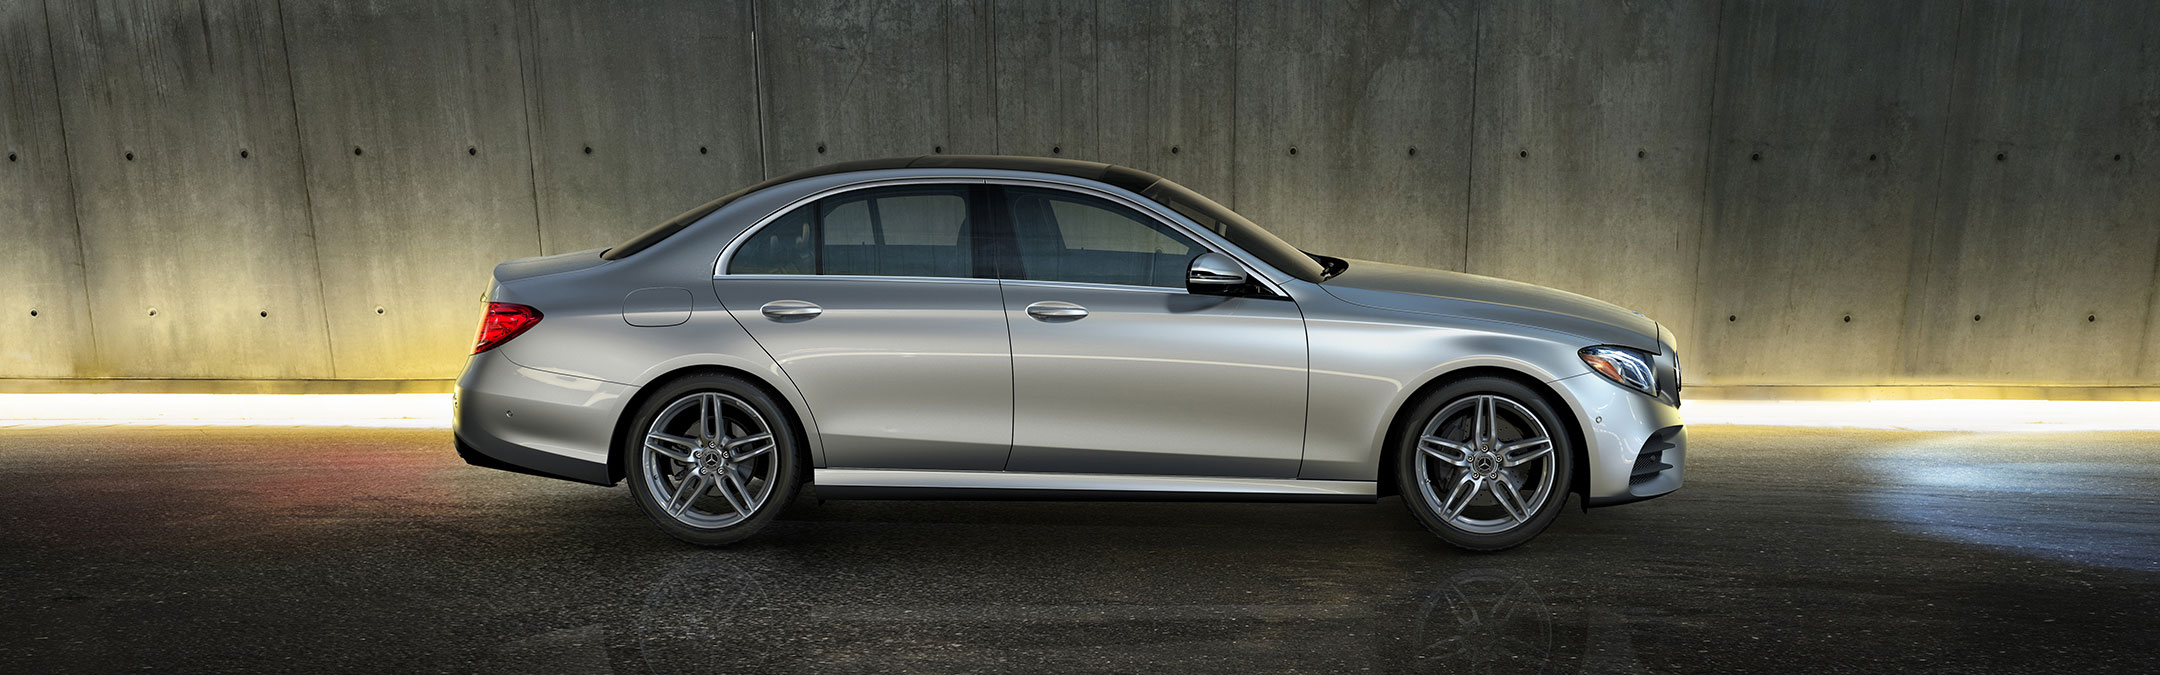 Photo Gallery of Exciting E-Class Color Options